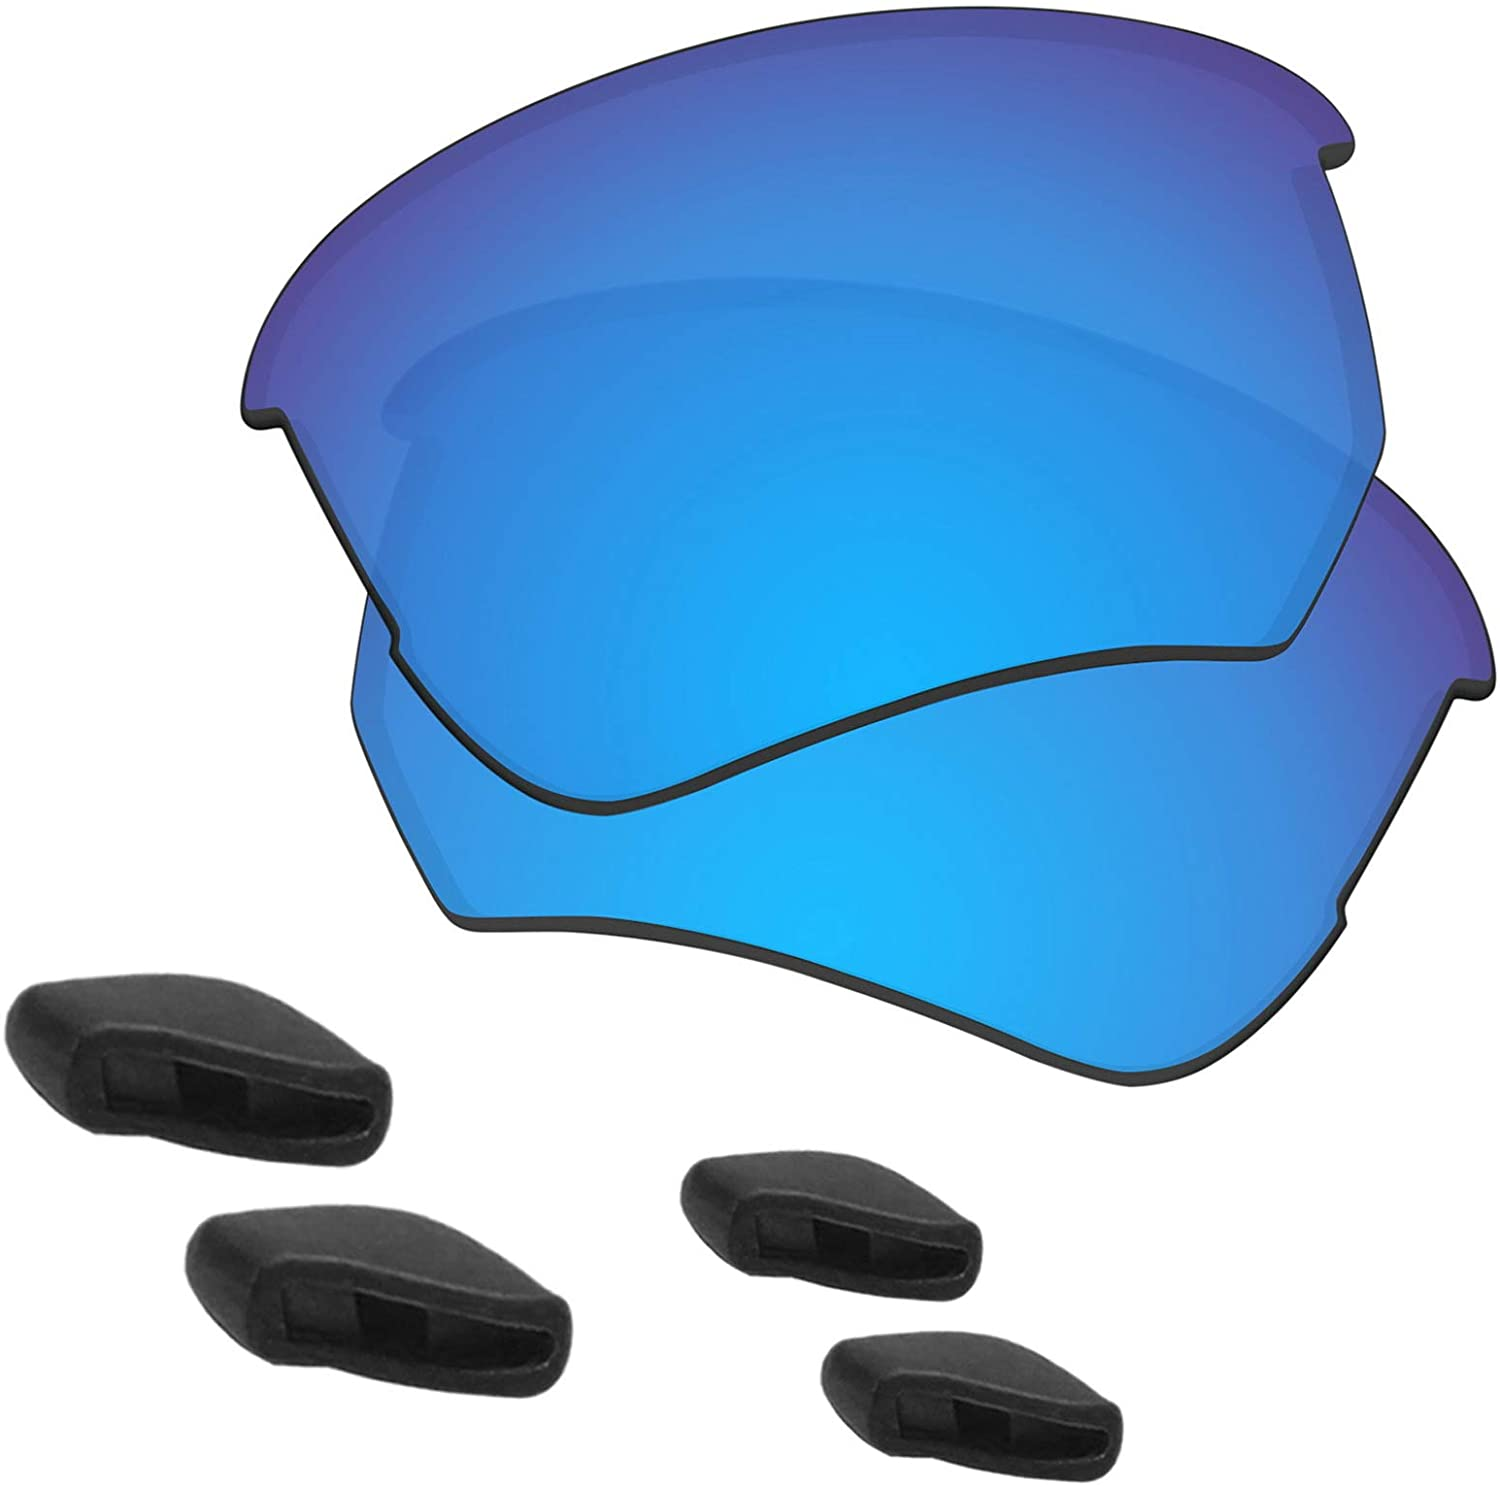 Predrox Flak Beta Lenses & Nose Pieces Replacement for Oakley OO9363 Polarized